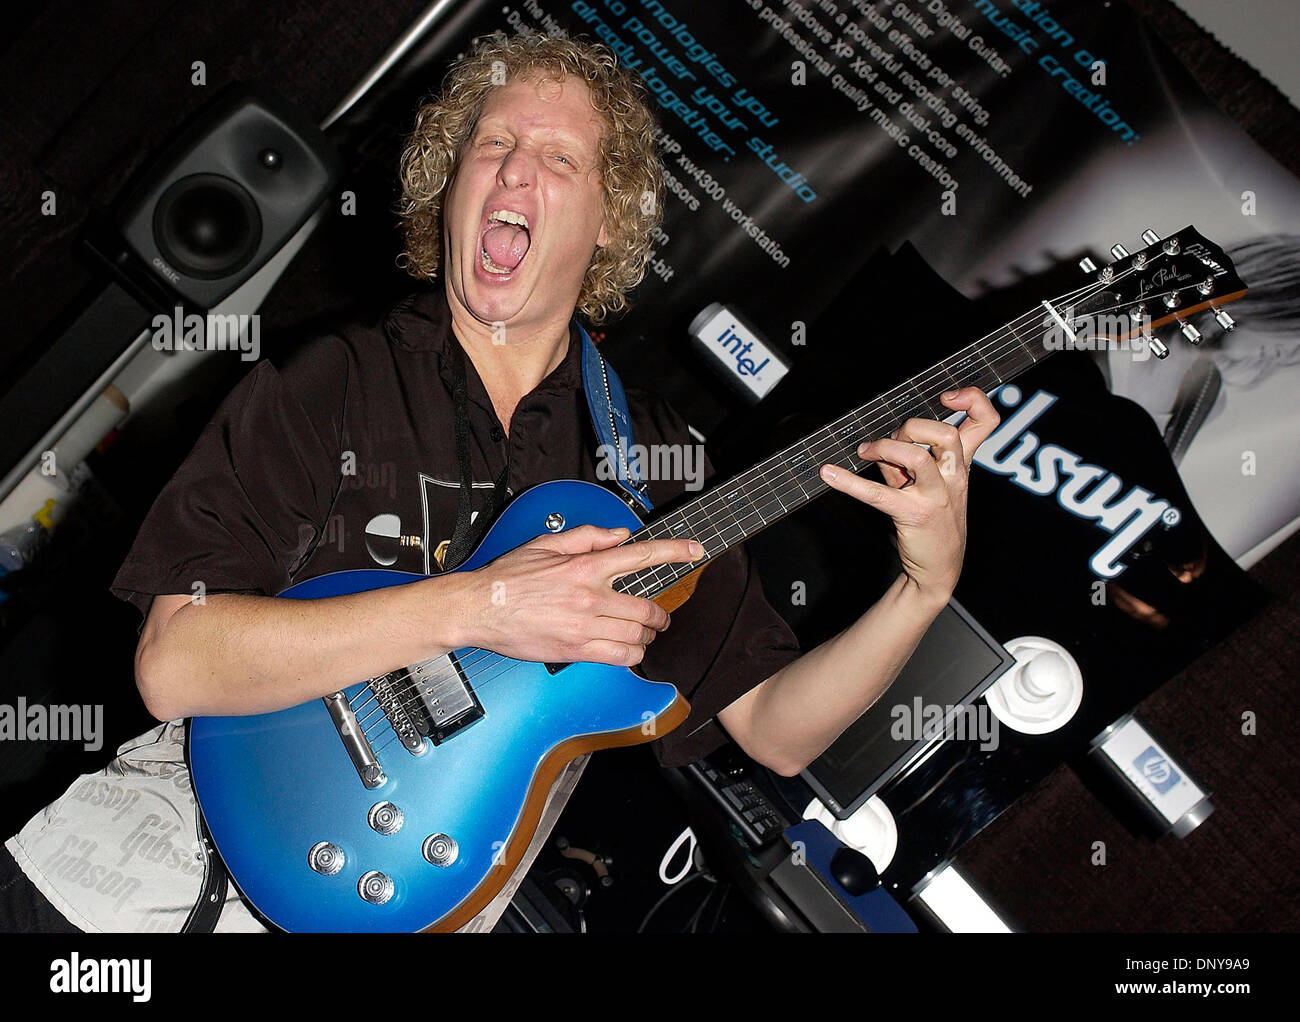 january 19 2006 anaheim ca usa musician bart walsh at the gibson stock photo royalty free. Black Bedroom Furniture Sets. Home Design Ideas